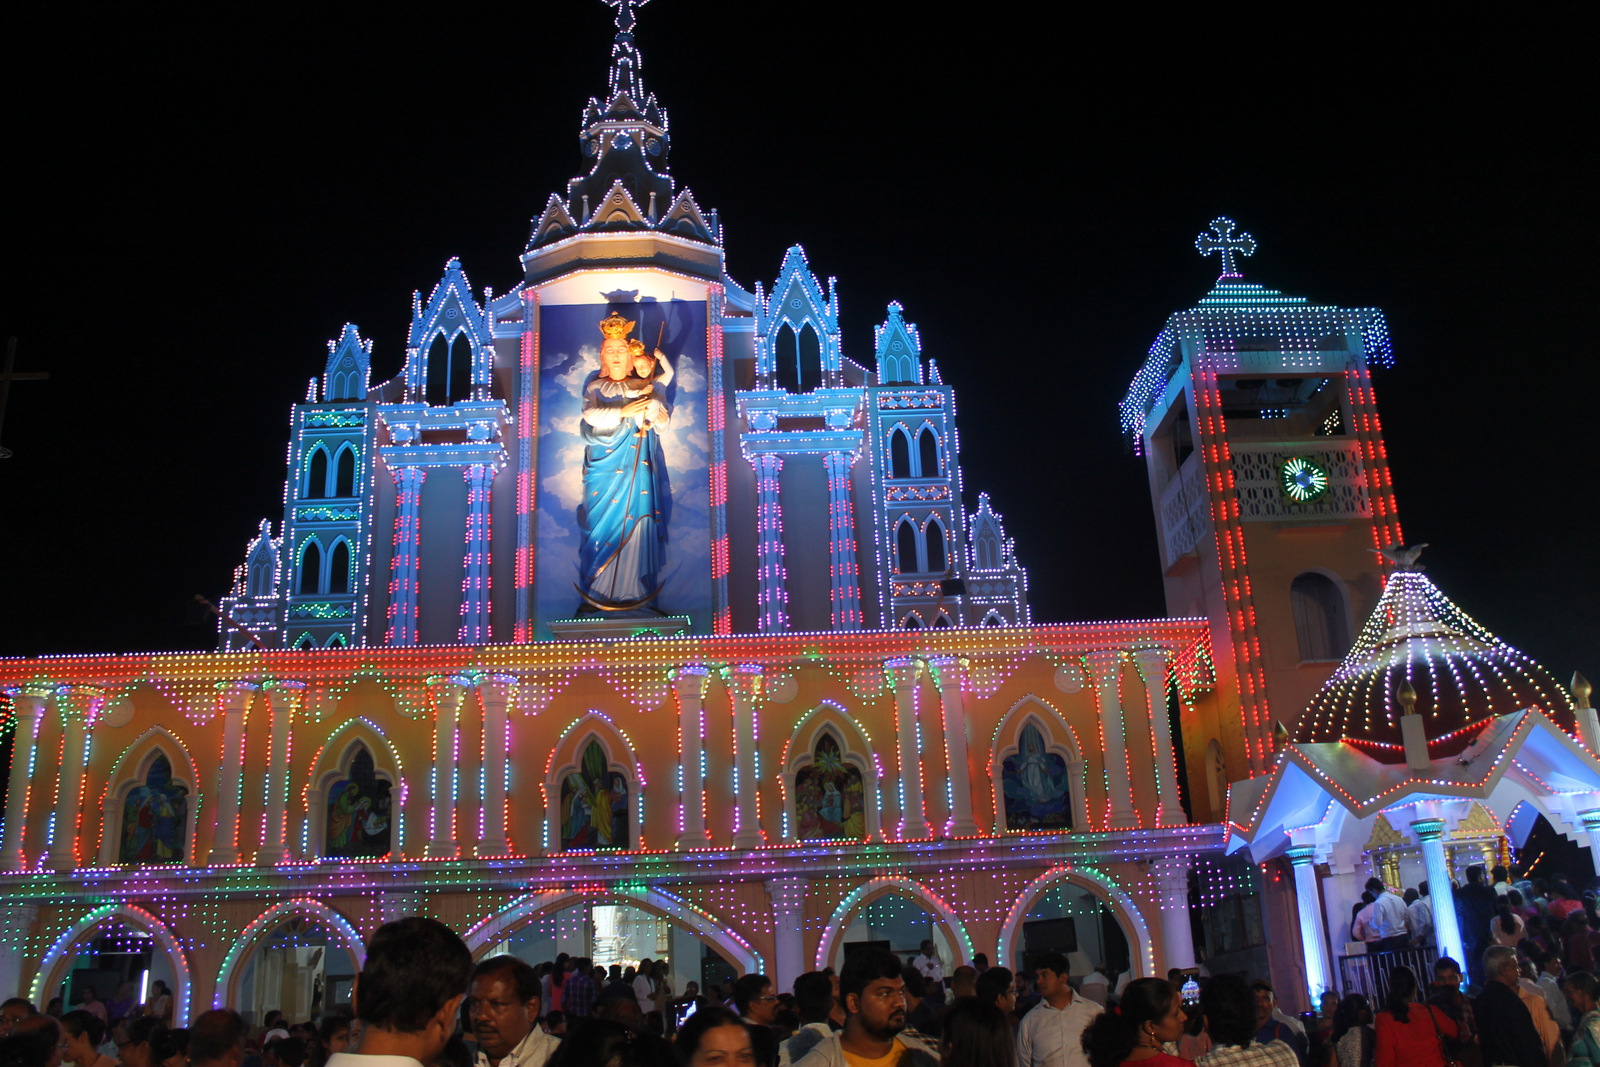 Milagres Cathedral of Udupi diocese observes 'Vespers' on the eve of Annual feast